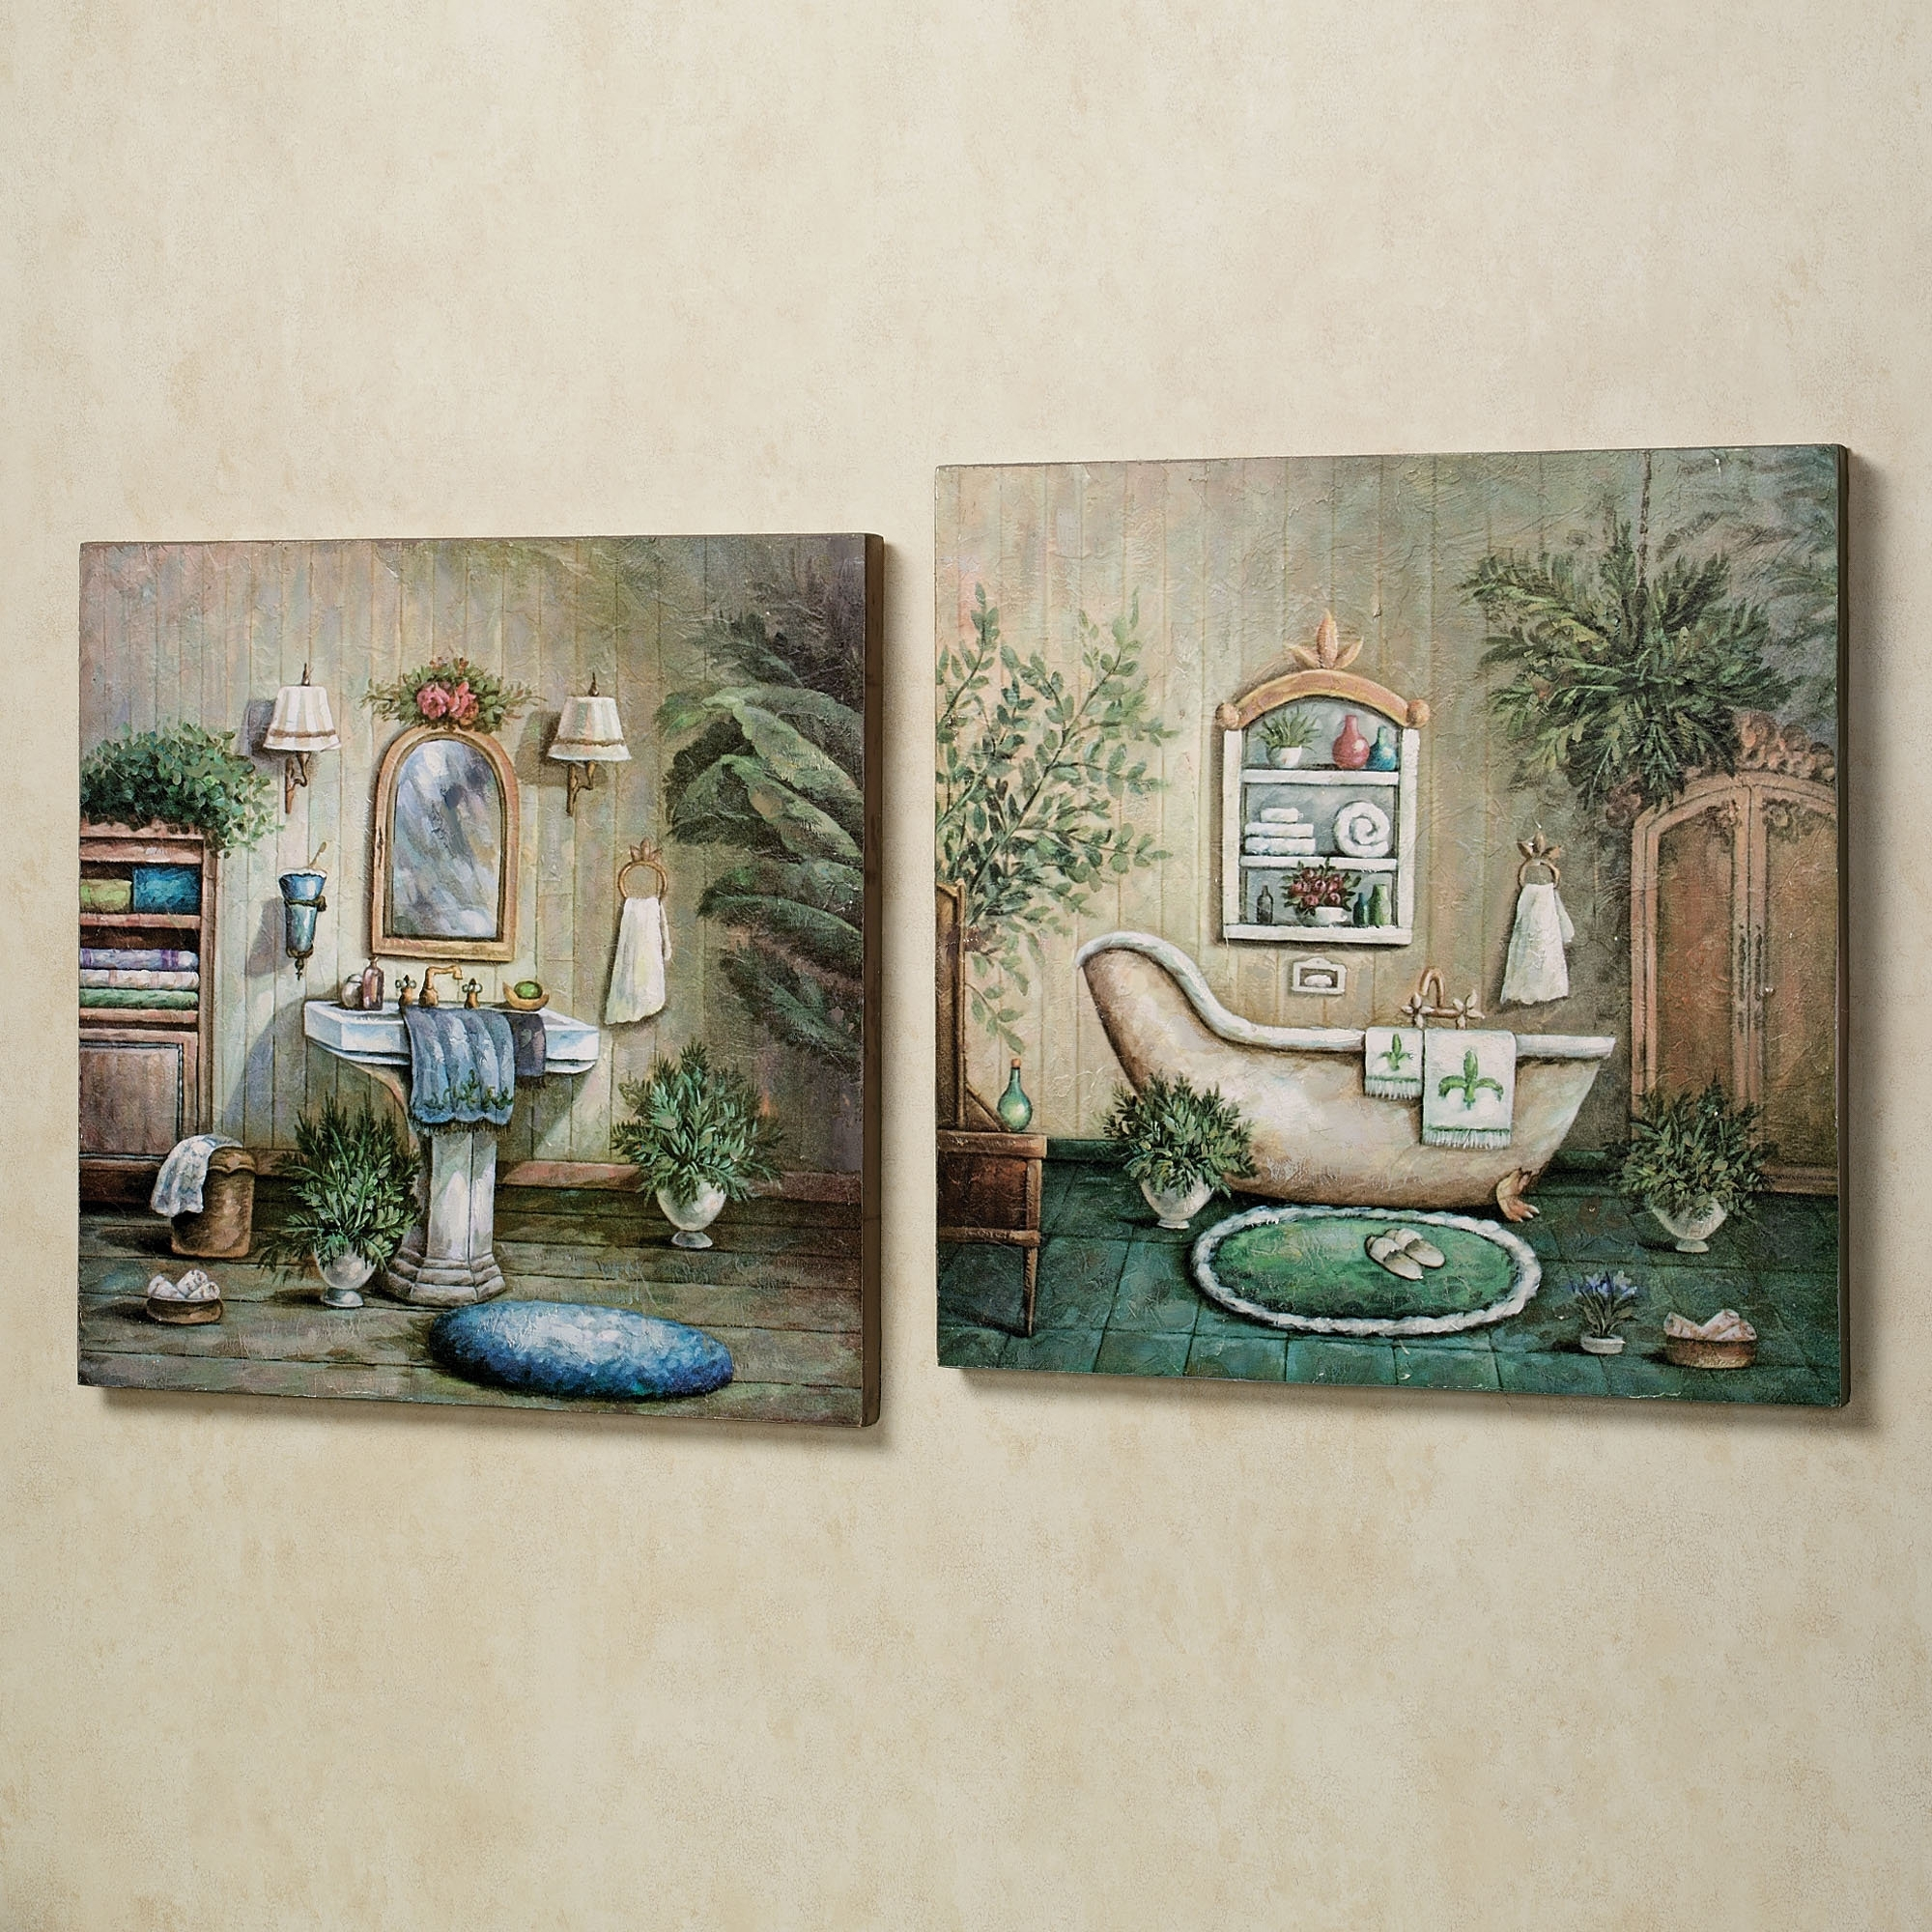 Latest Blissful Bath Wooden Wall Art Plaque Set (View 4 of 15)